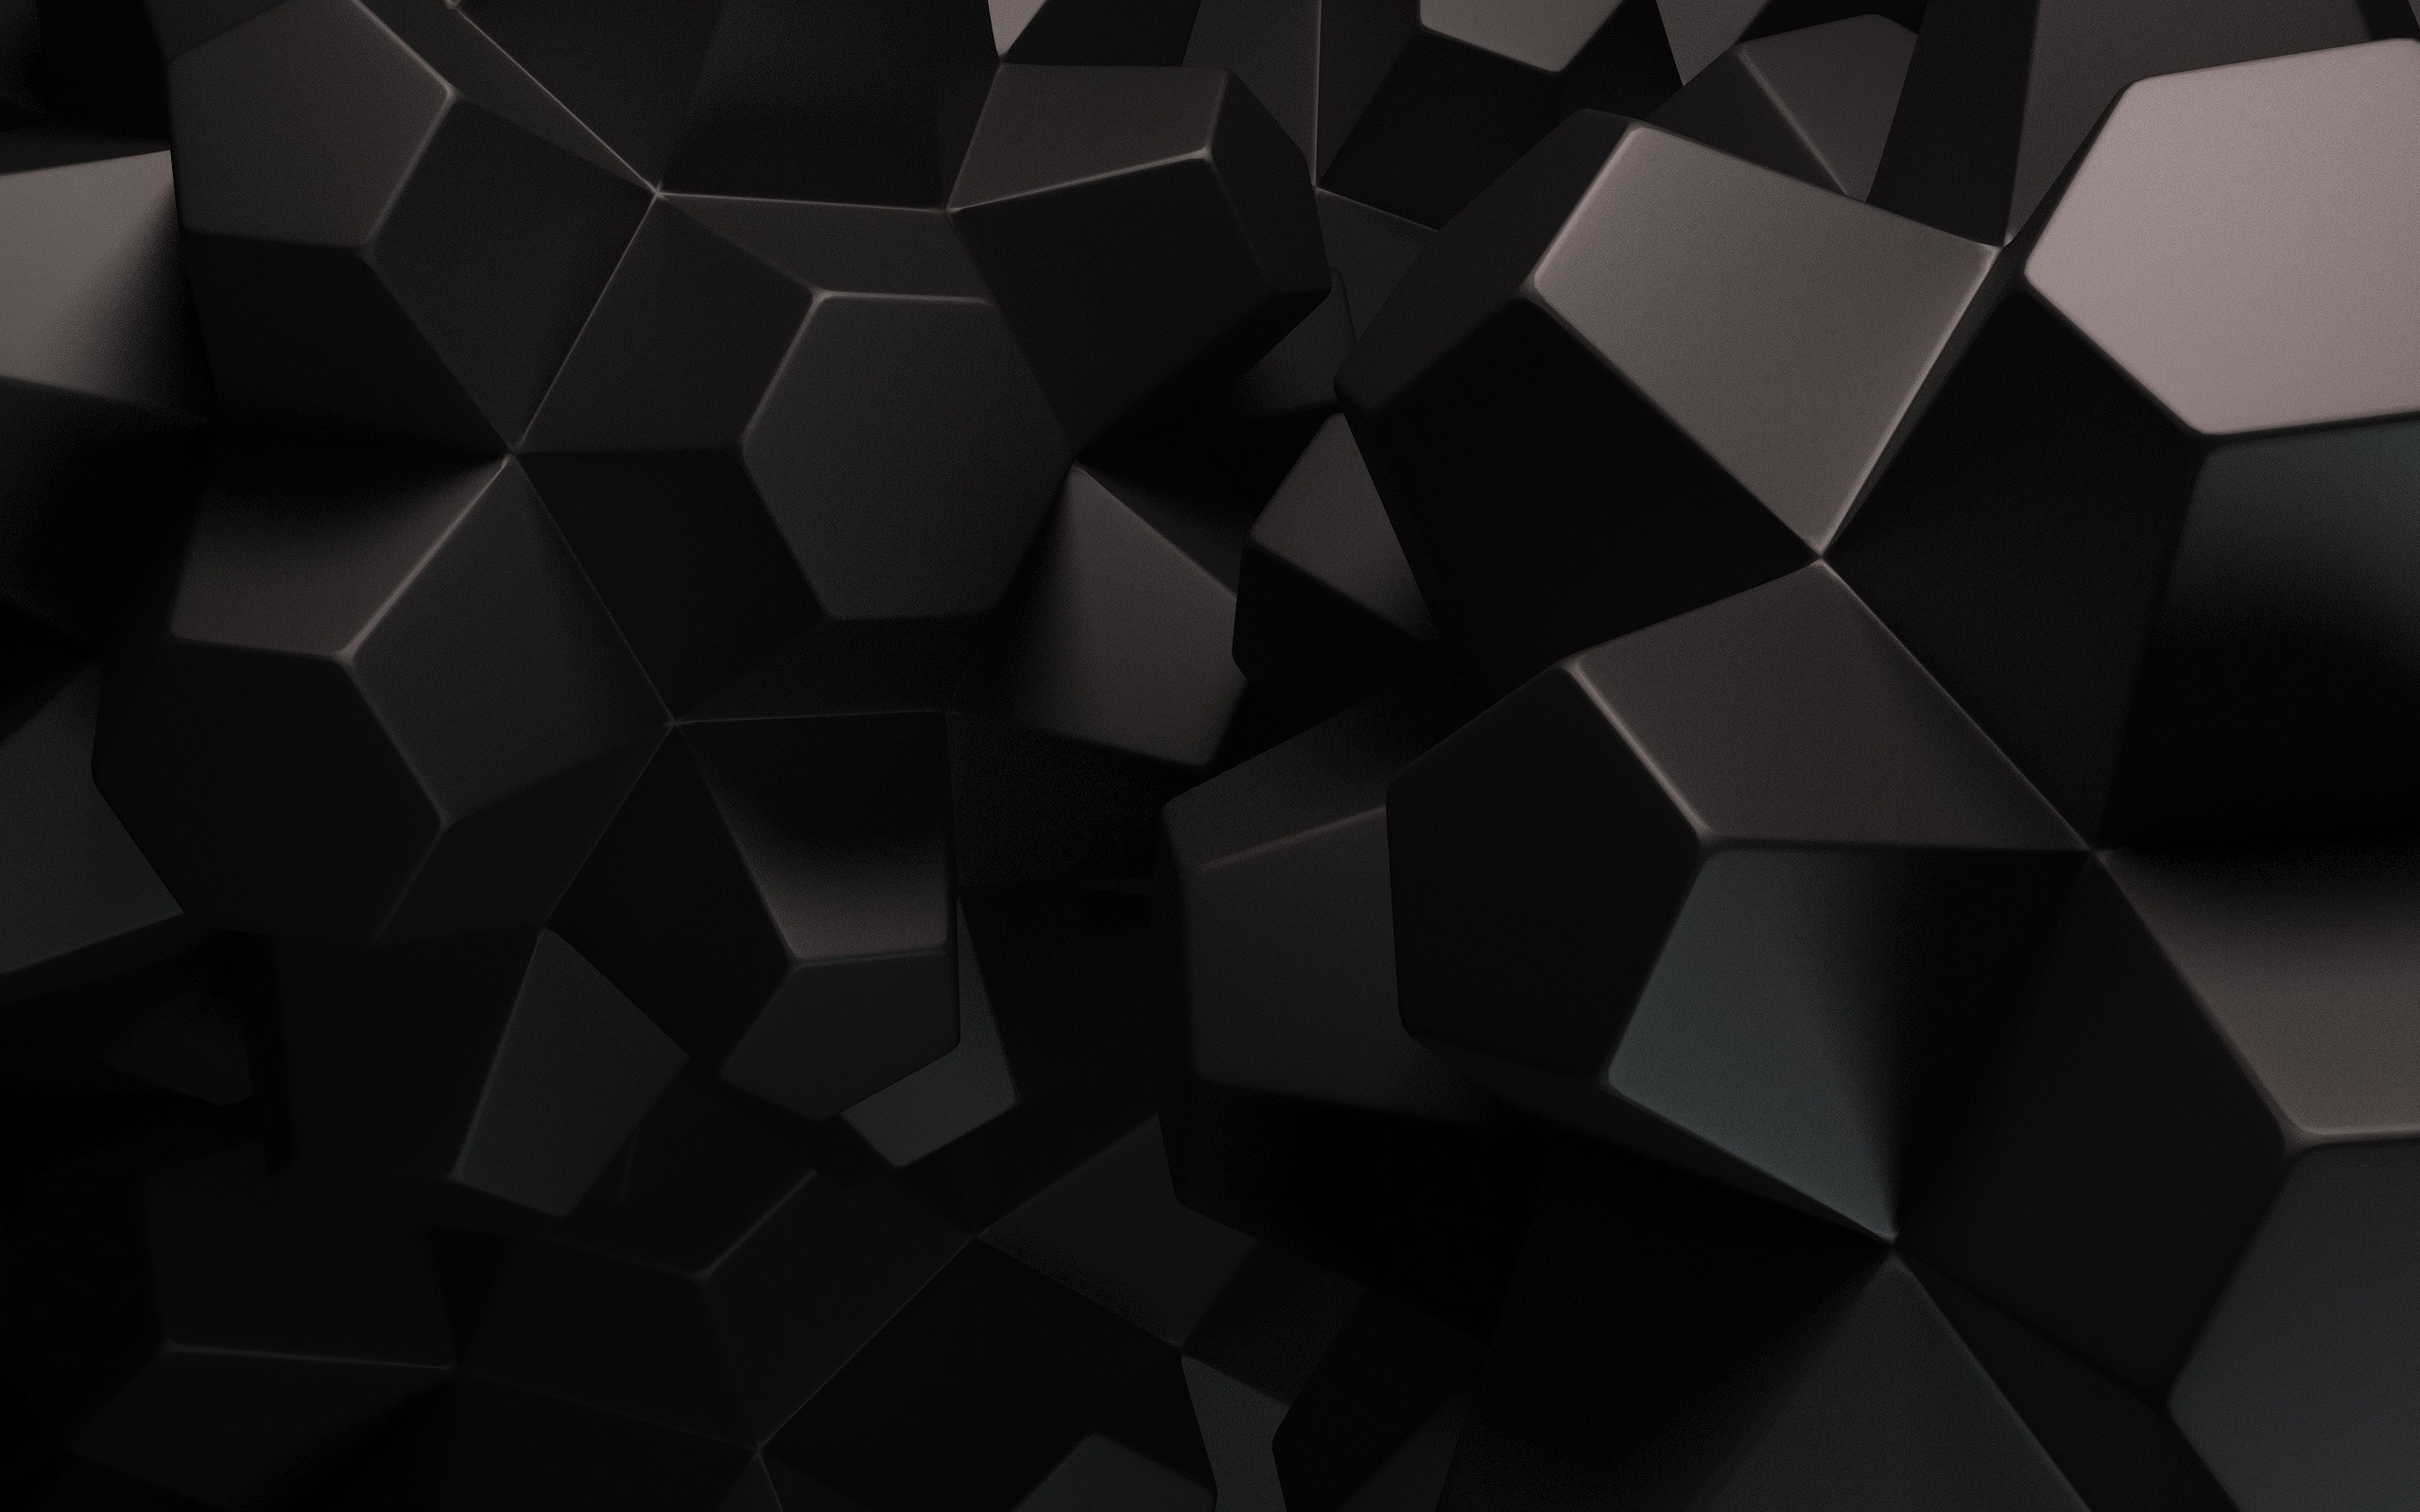 2560x1600 Black Wallpaper 15467